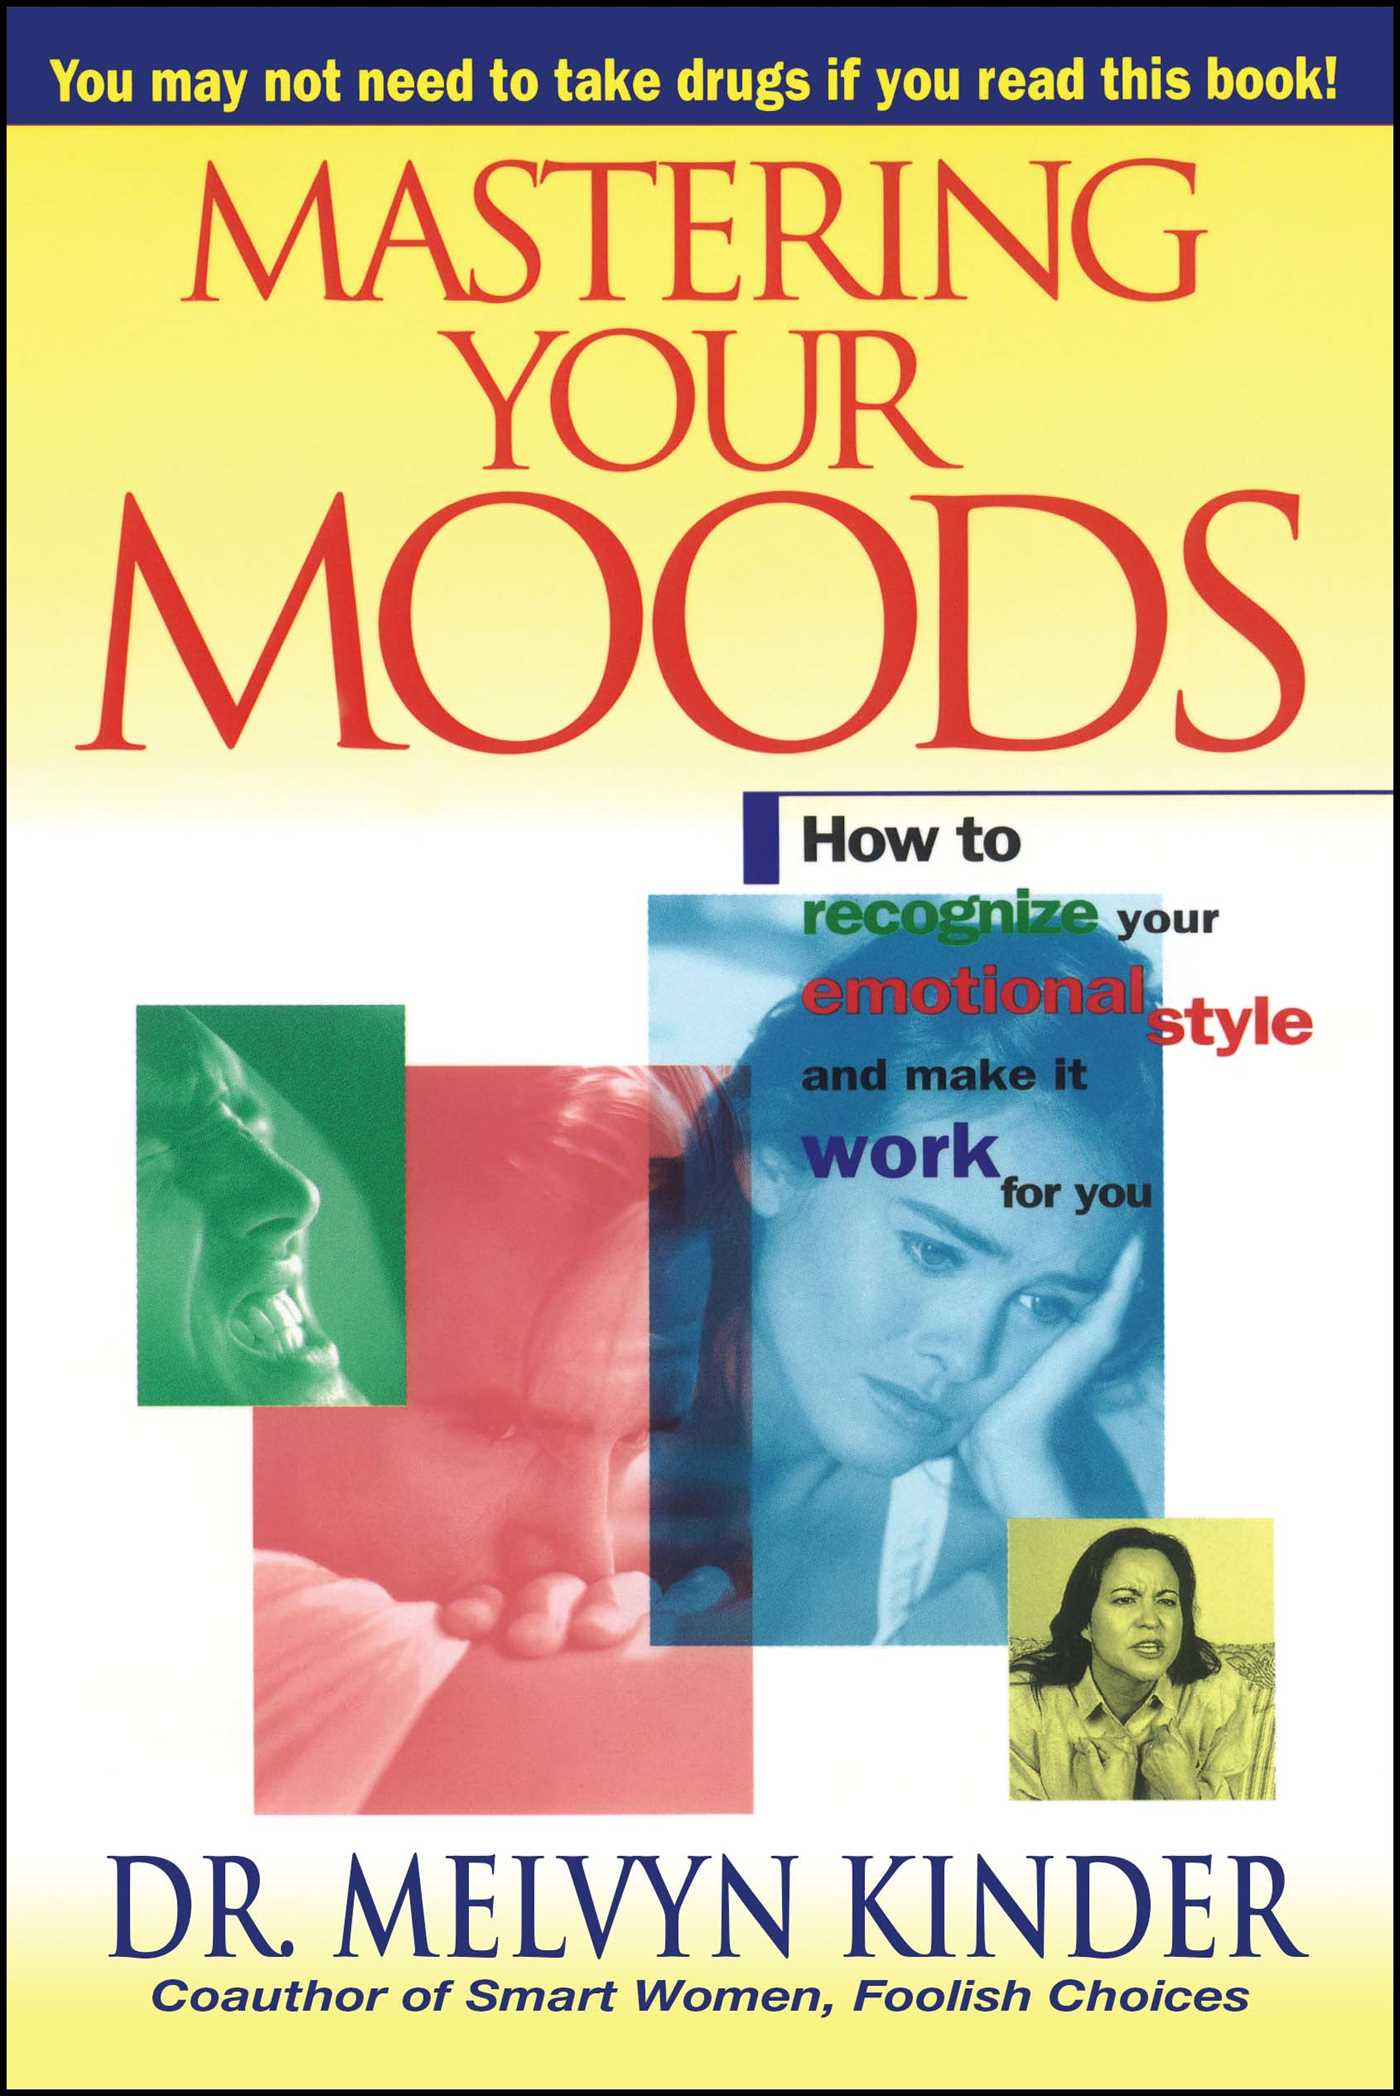 Mastering your moods 9780671505639 hr